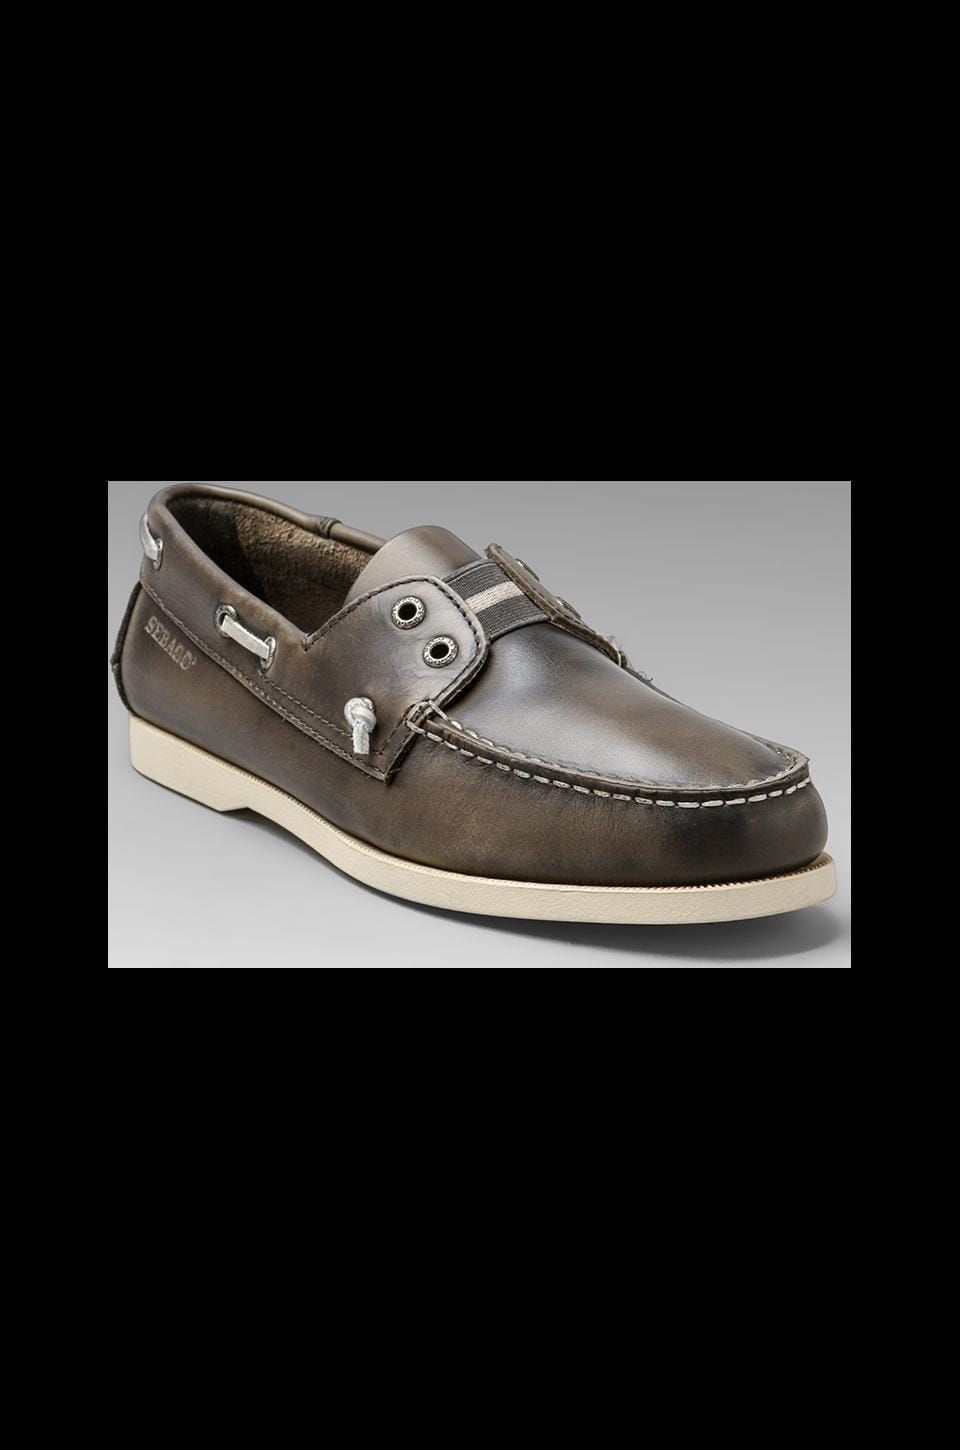 Sebago Wharf Slip-On in Gray